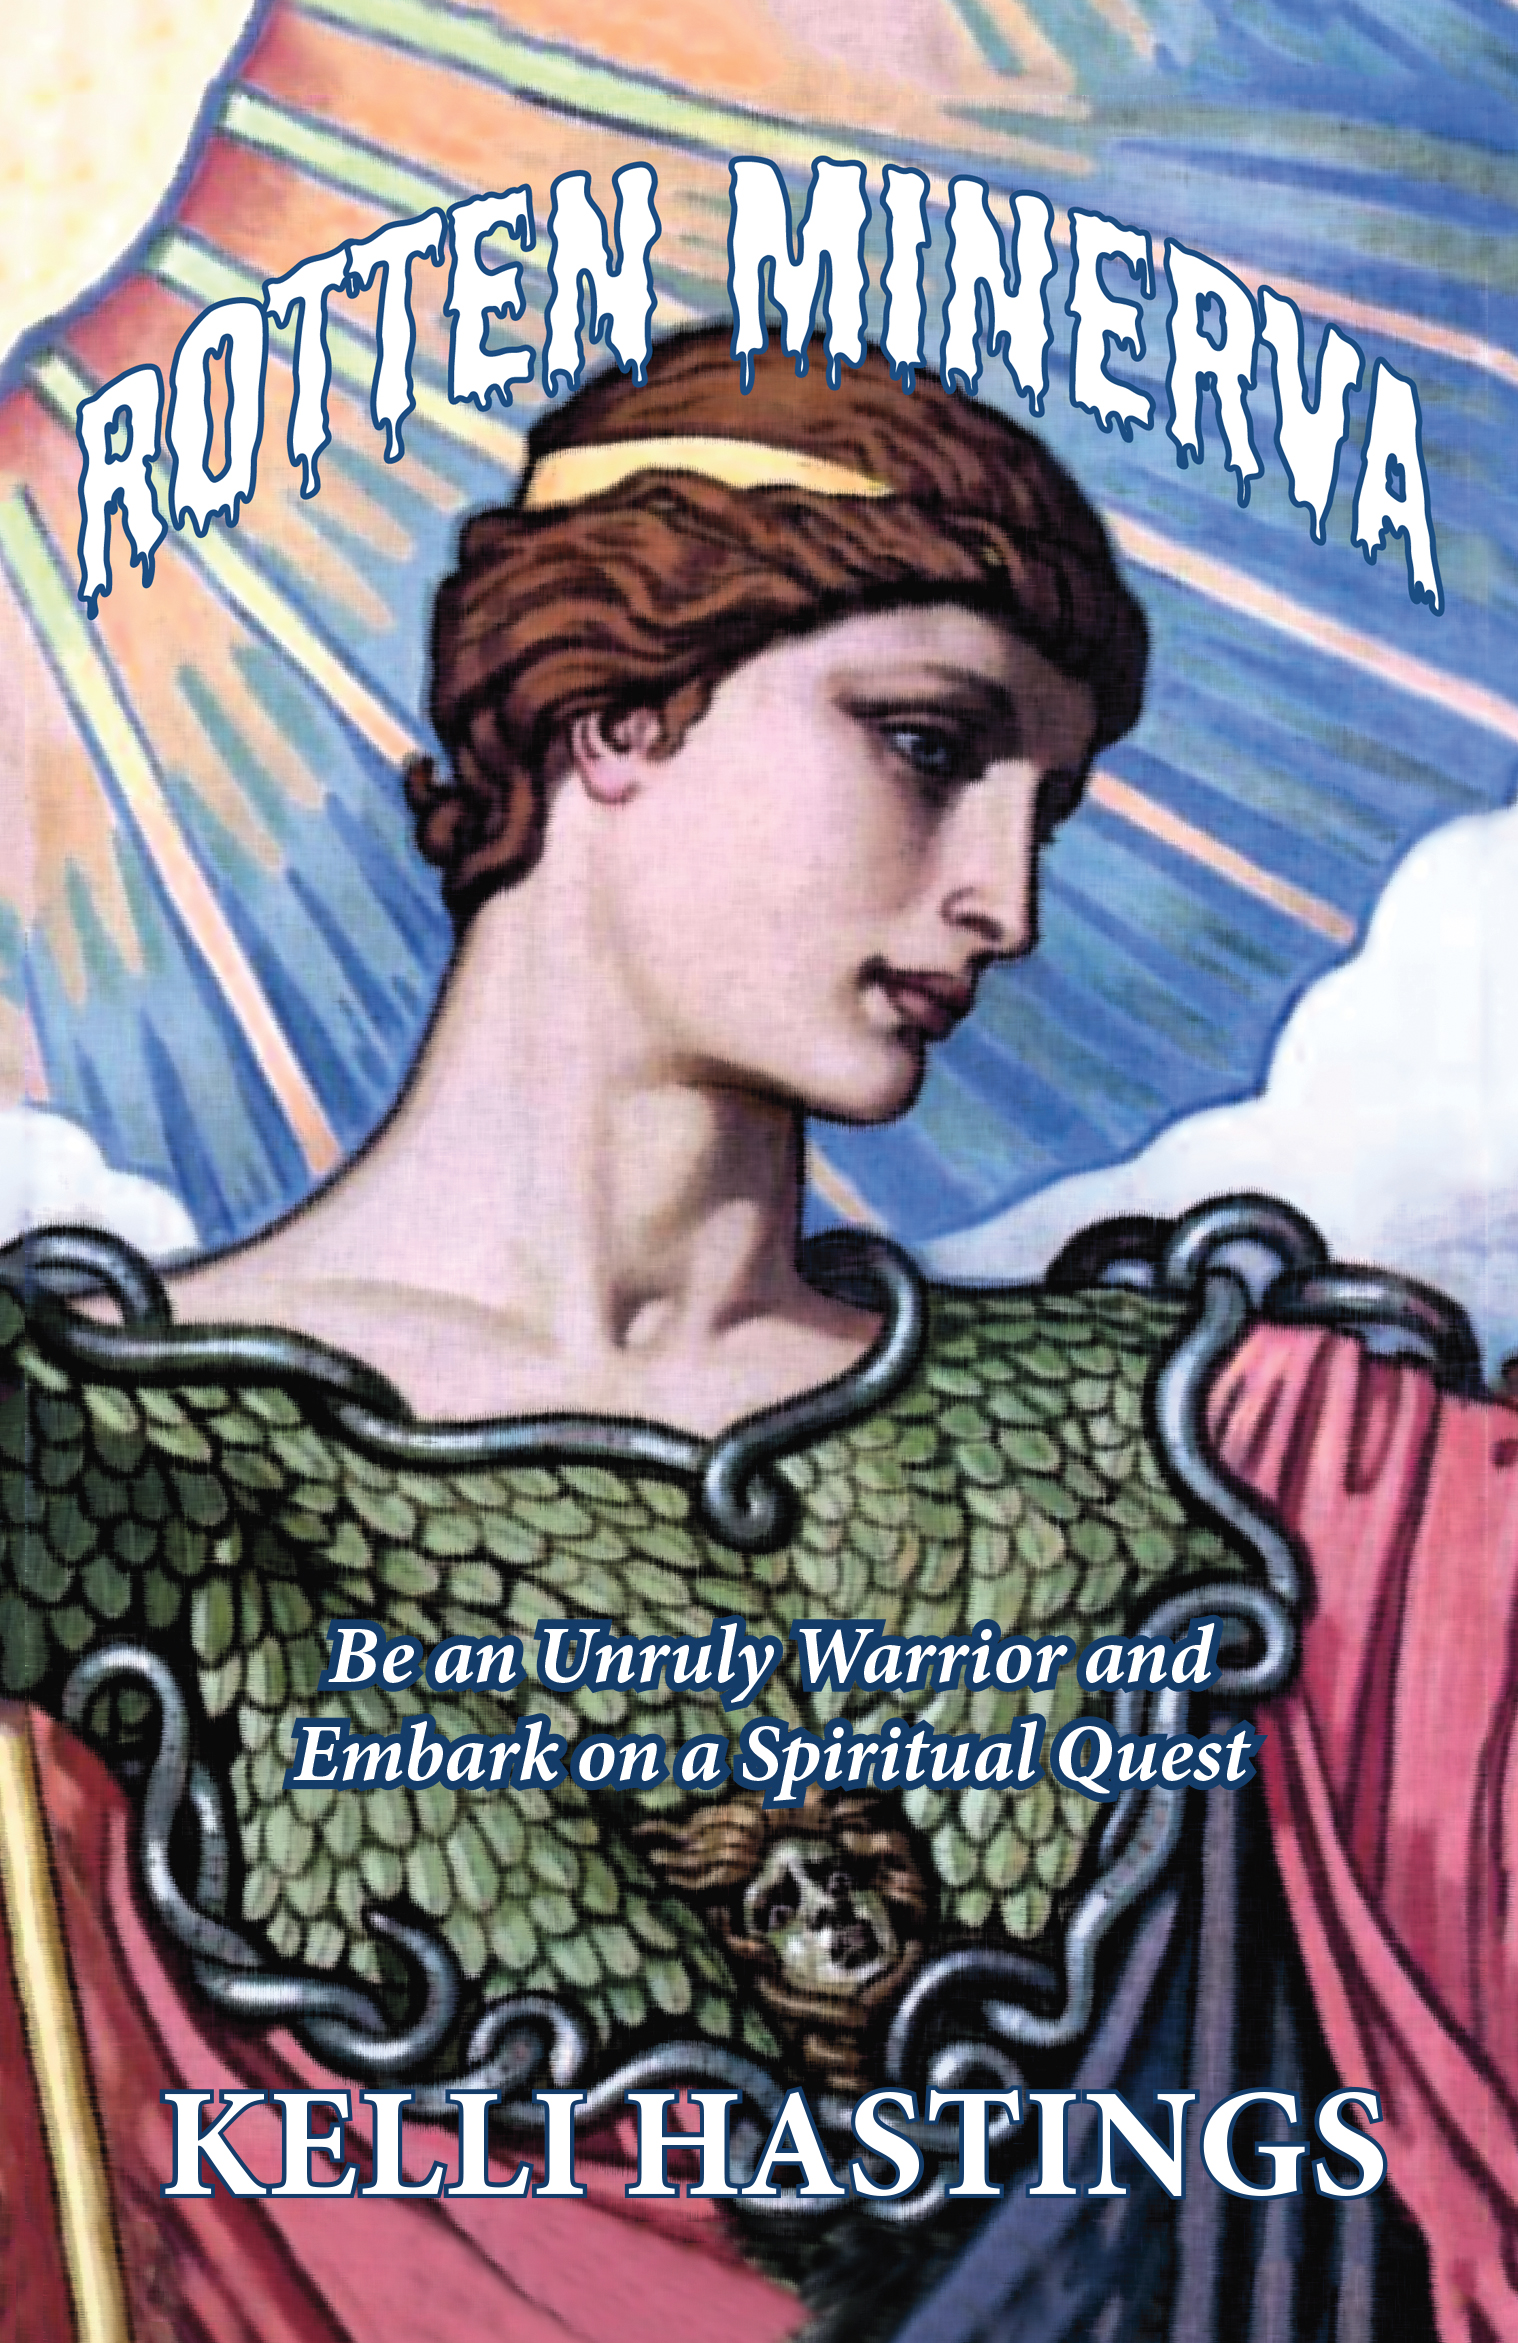 Rotten Minerva: Be an Unruly Warrior and Embark on a Spiritual Quest